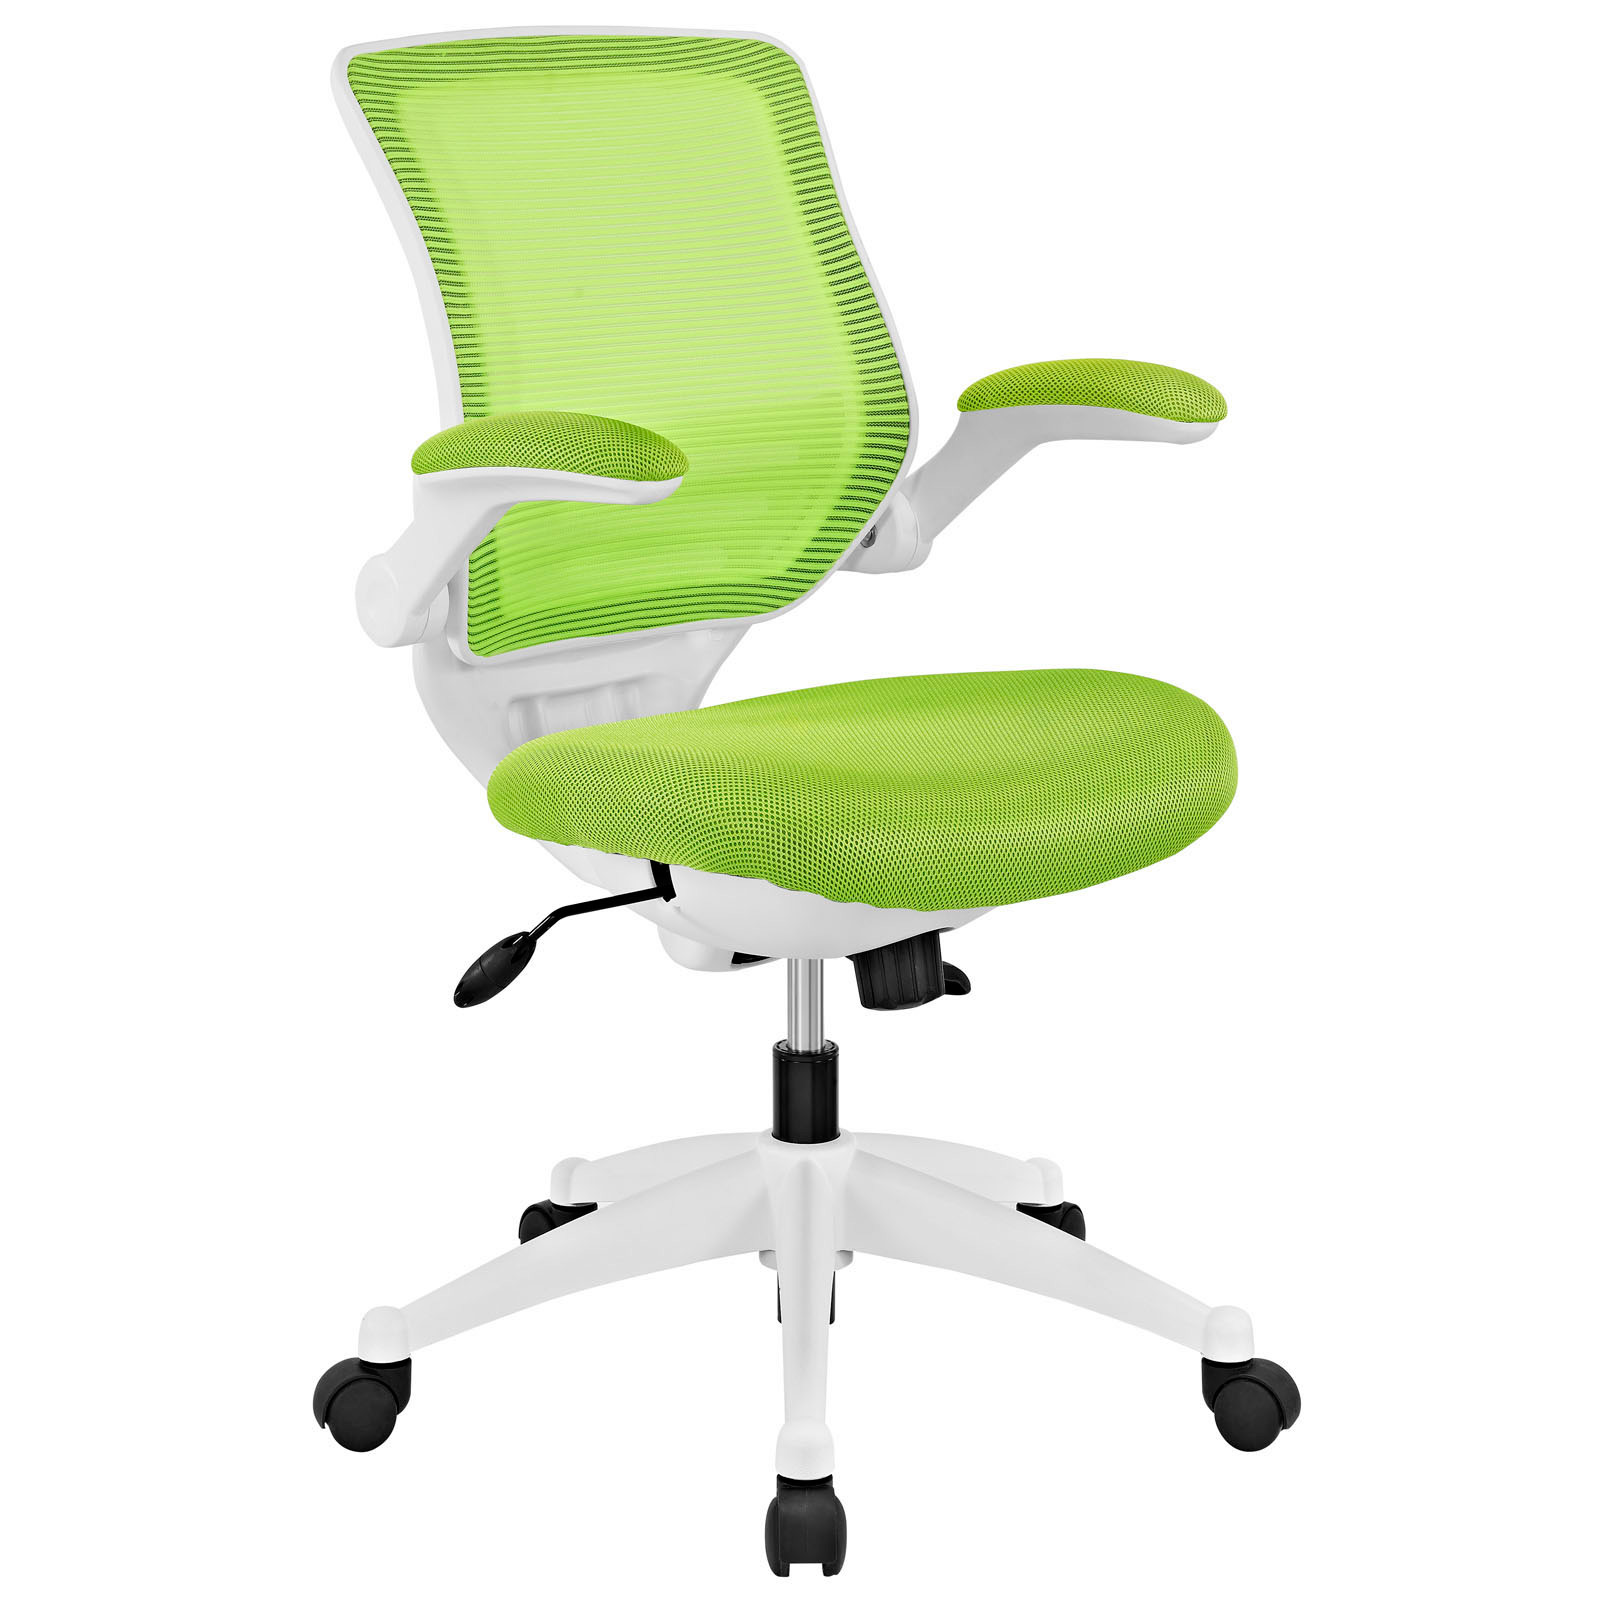 mesh office chairs office desk chairs office furniture chairs